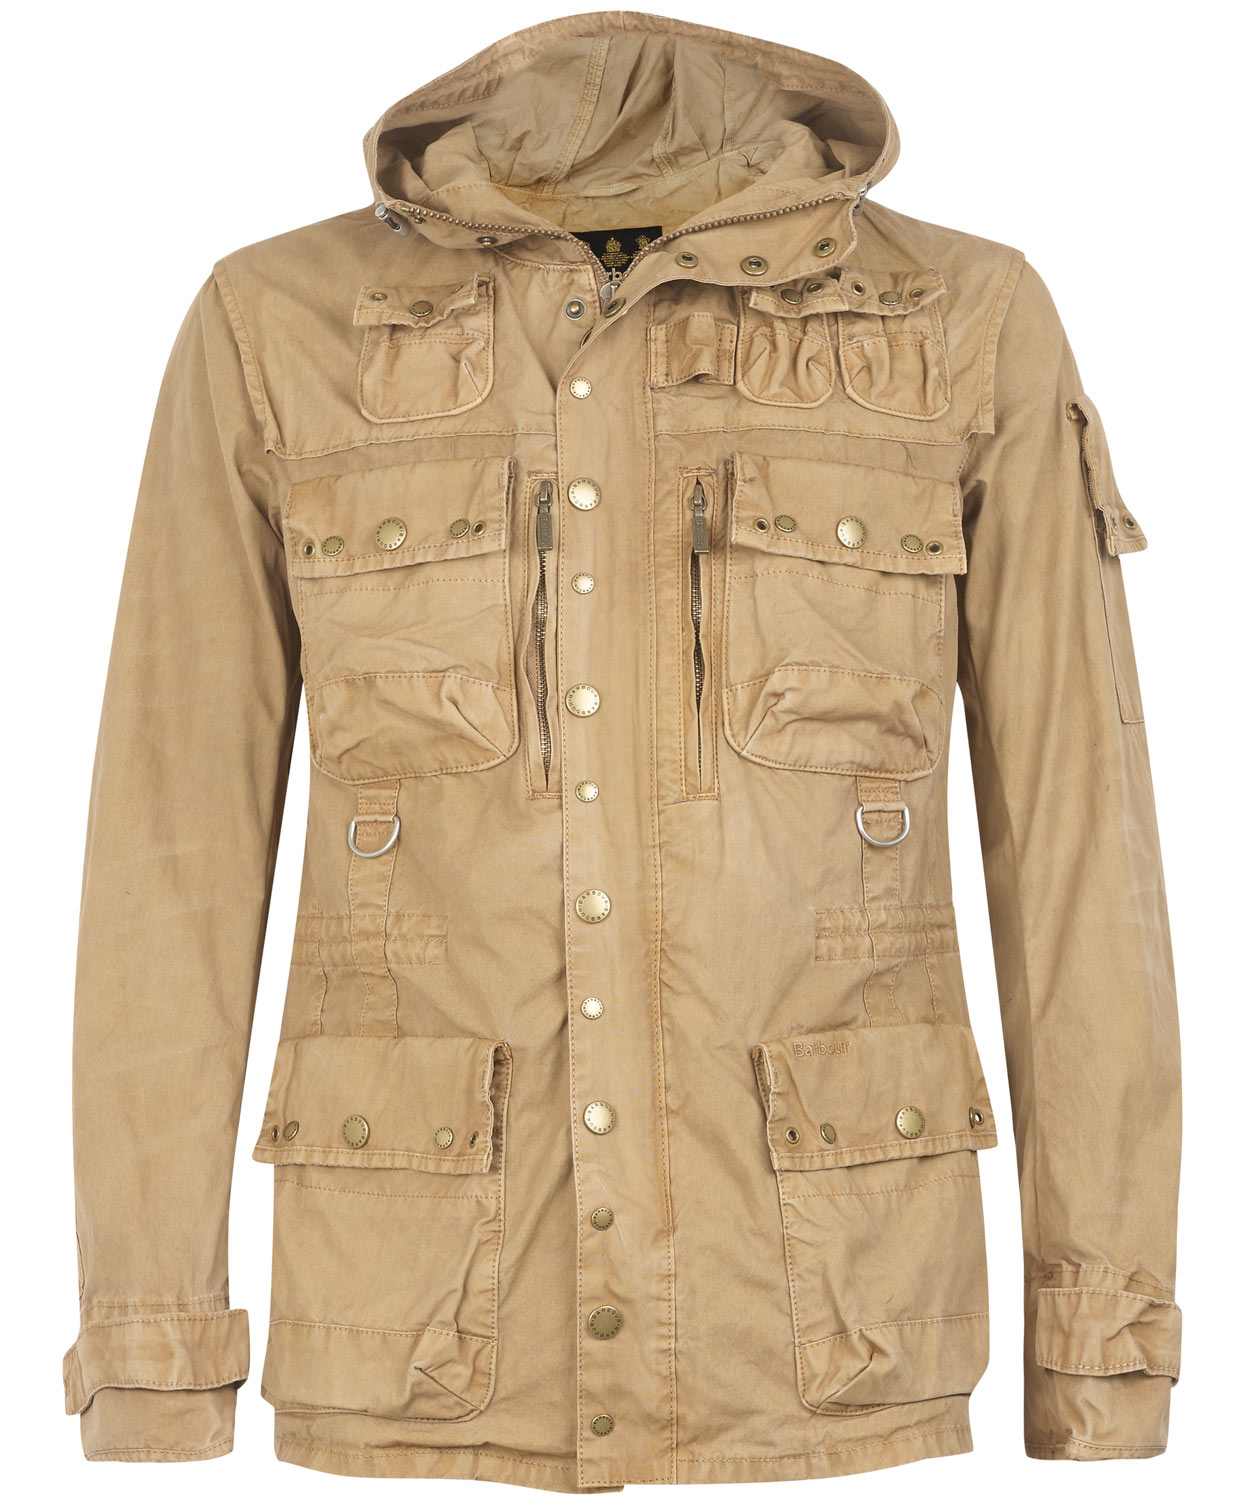 Lyst Barbour Vintage Cotton Hunting Jacket In Natural